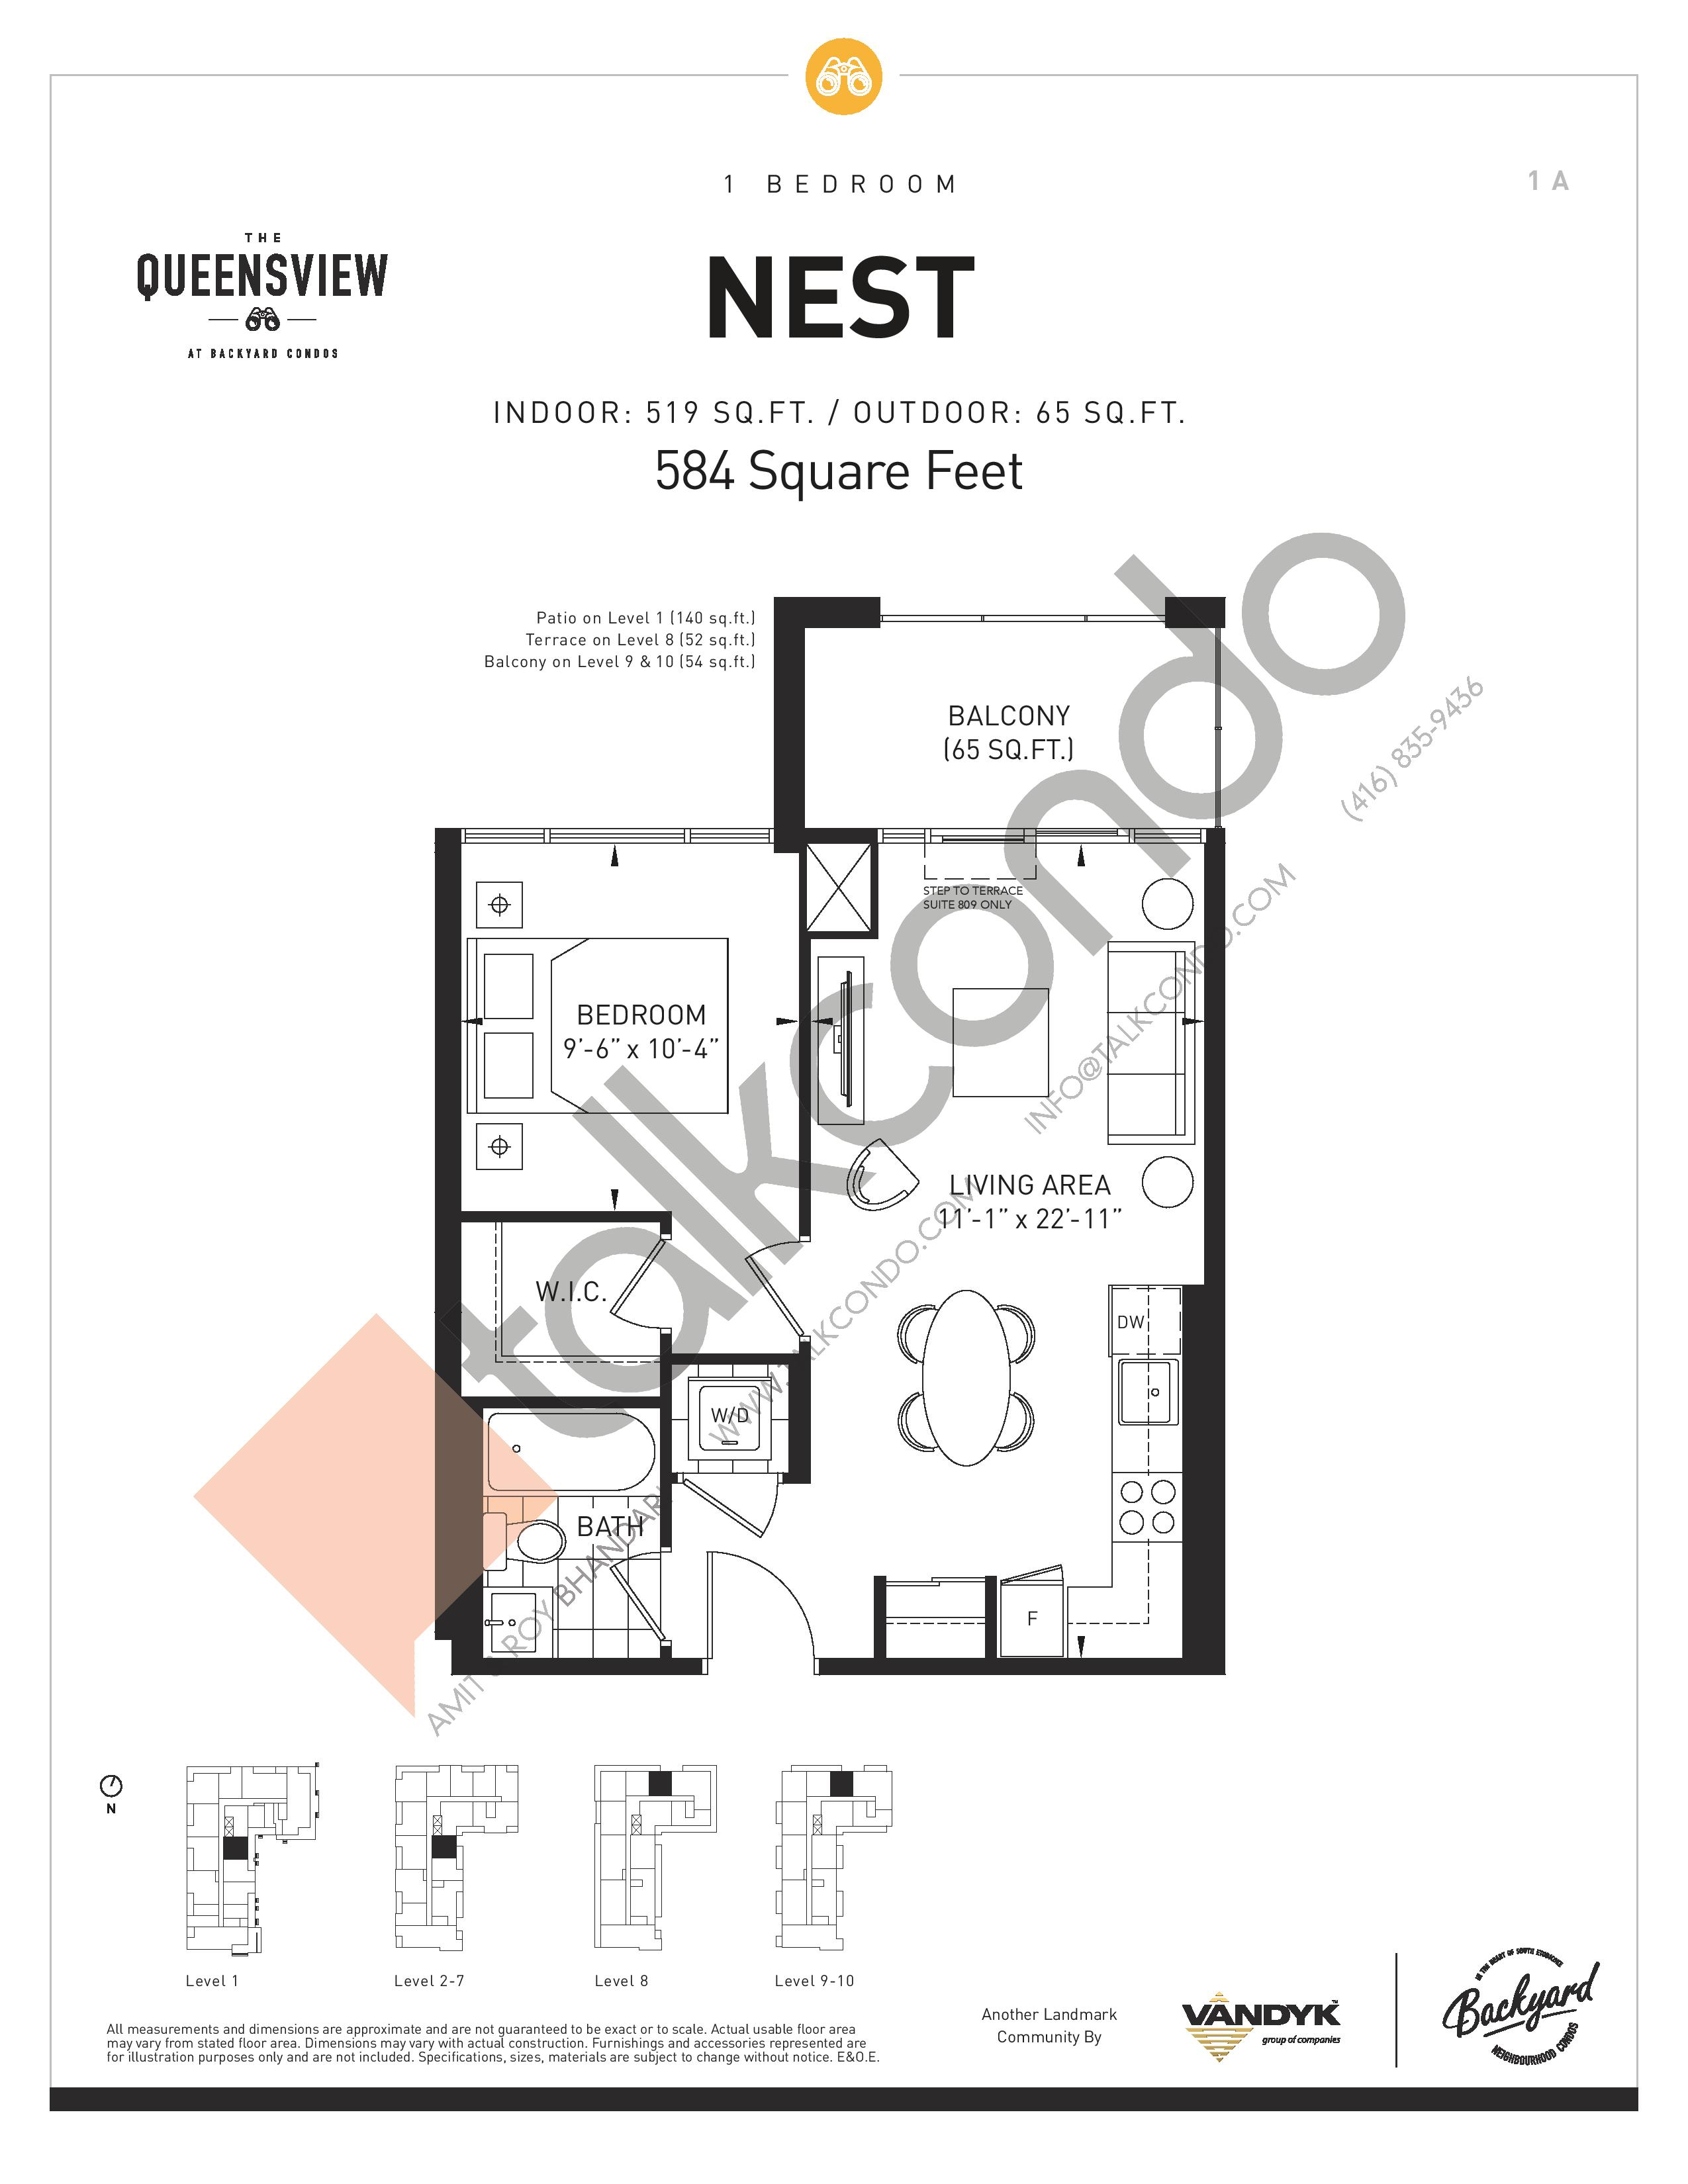 Nest Floor Plan at The Queensview at Backyard Condos - 519 sq.ft